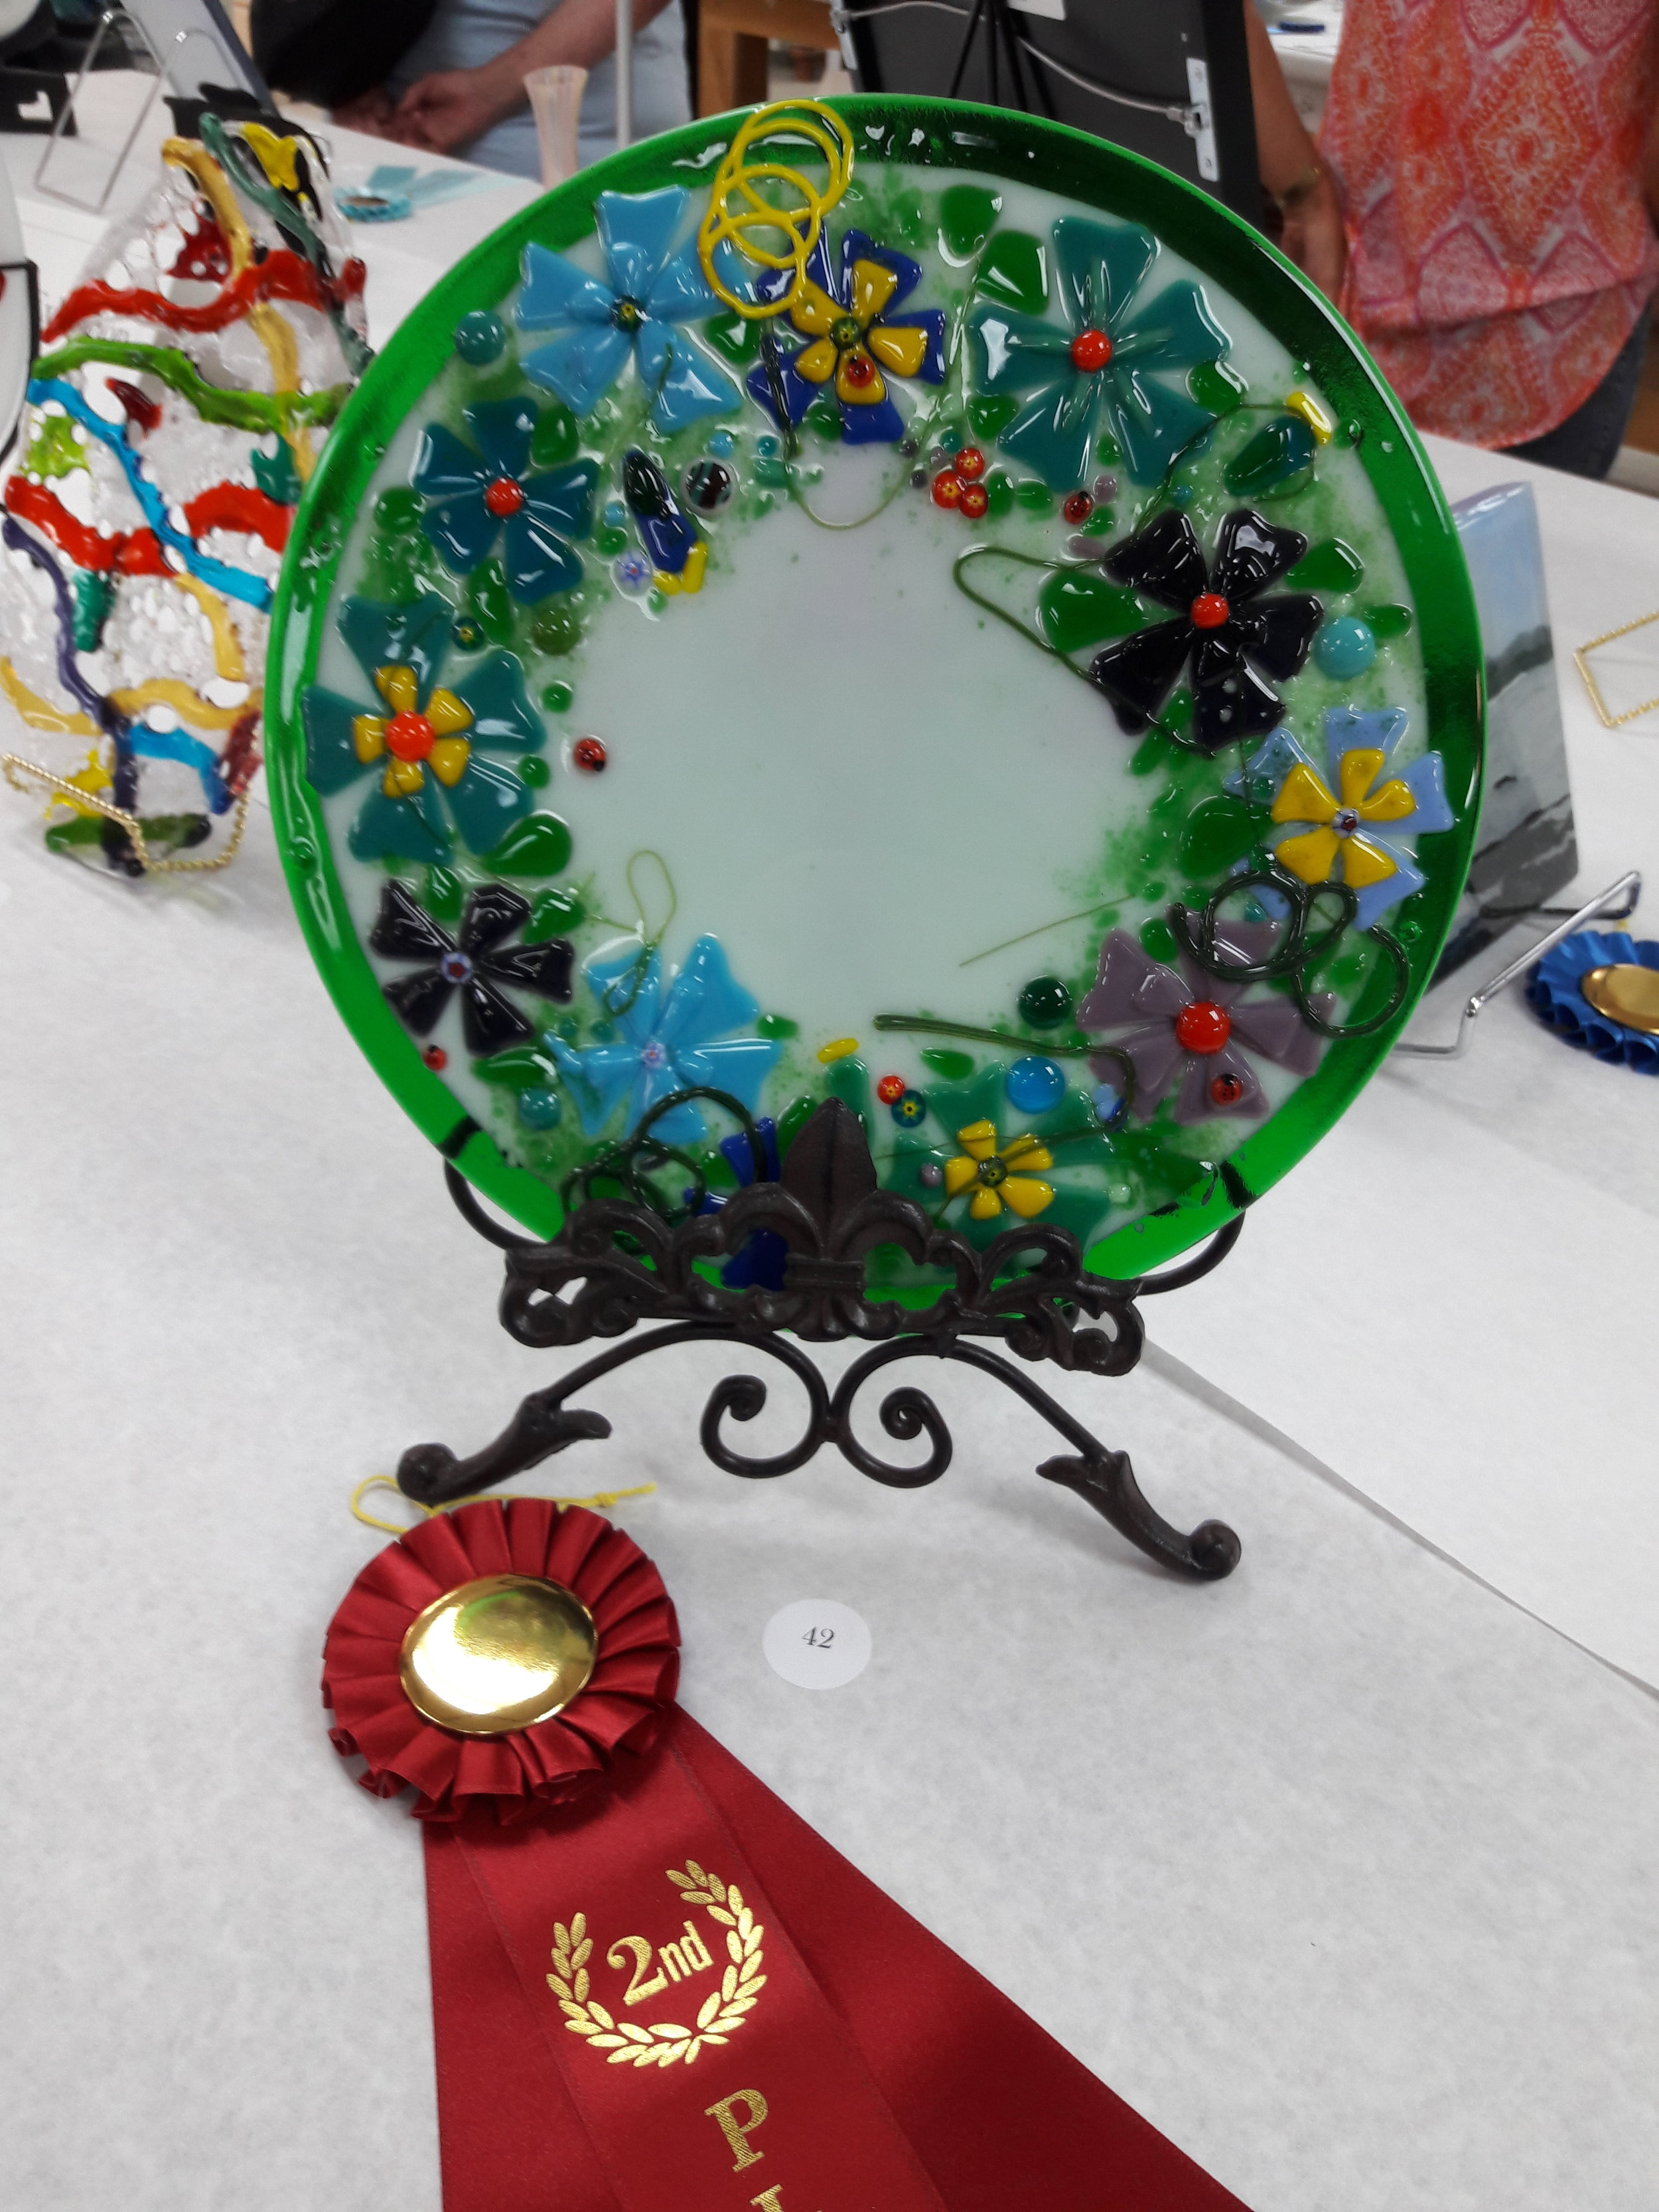 Exhibition - 2nd Place Warm Glass